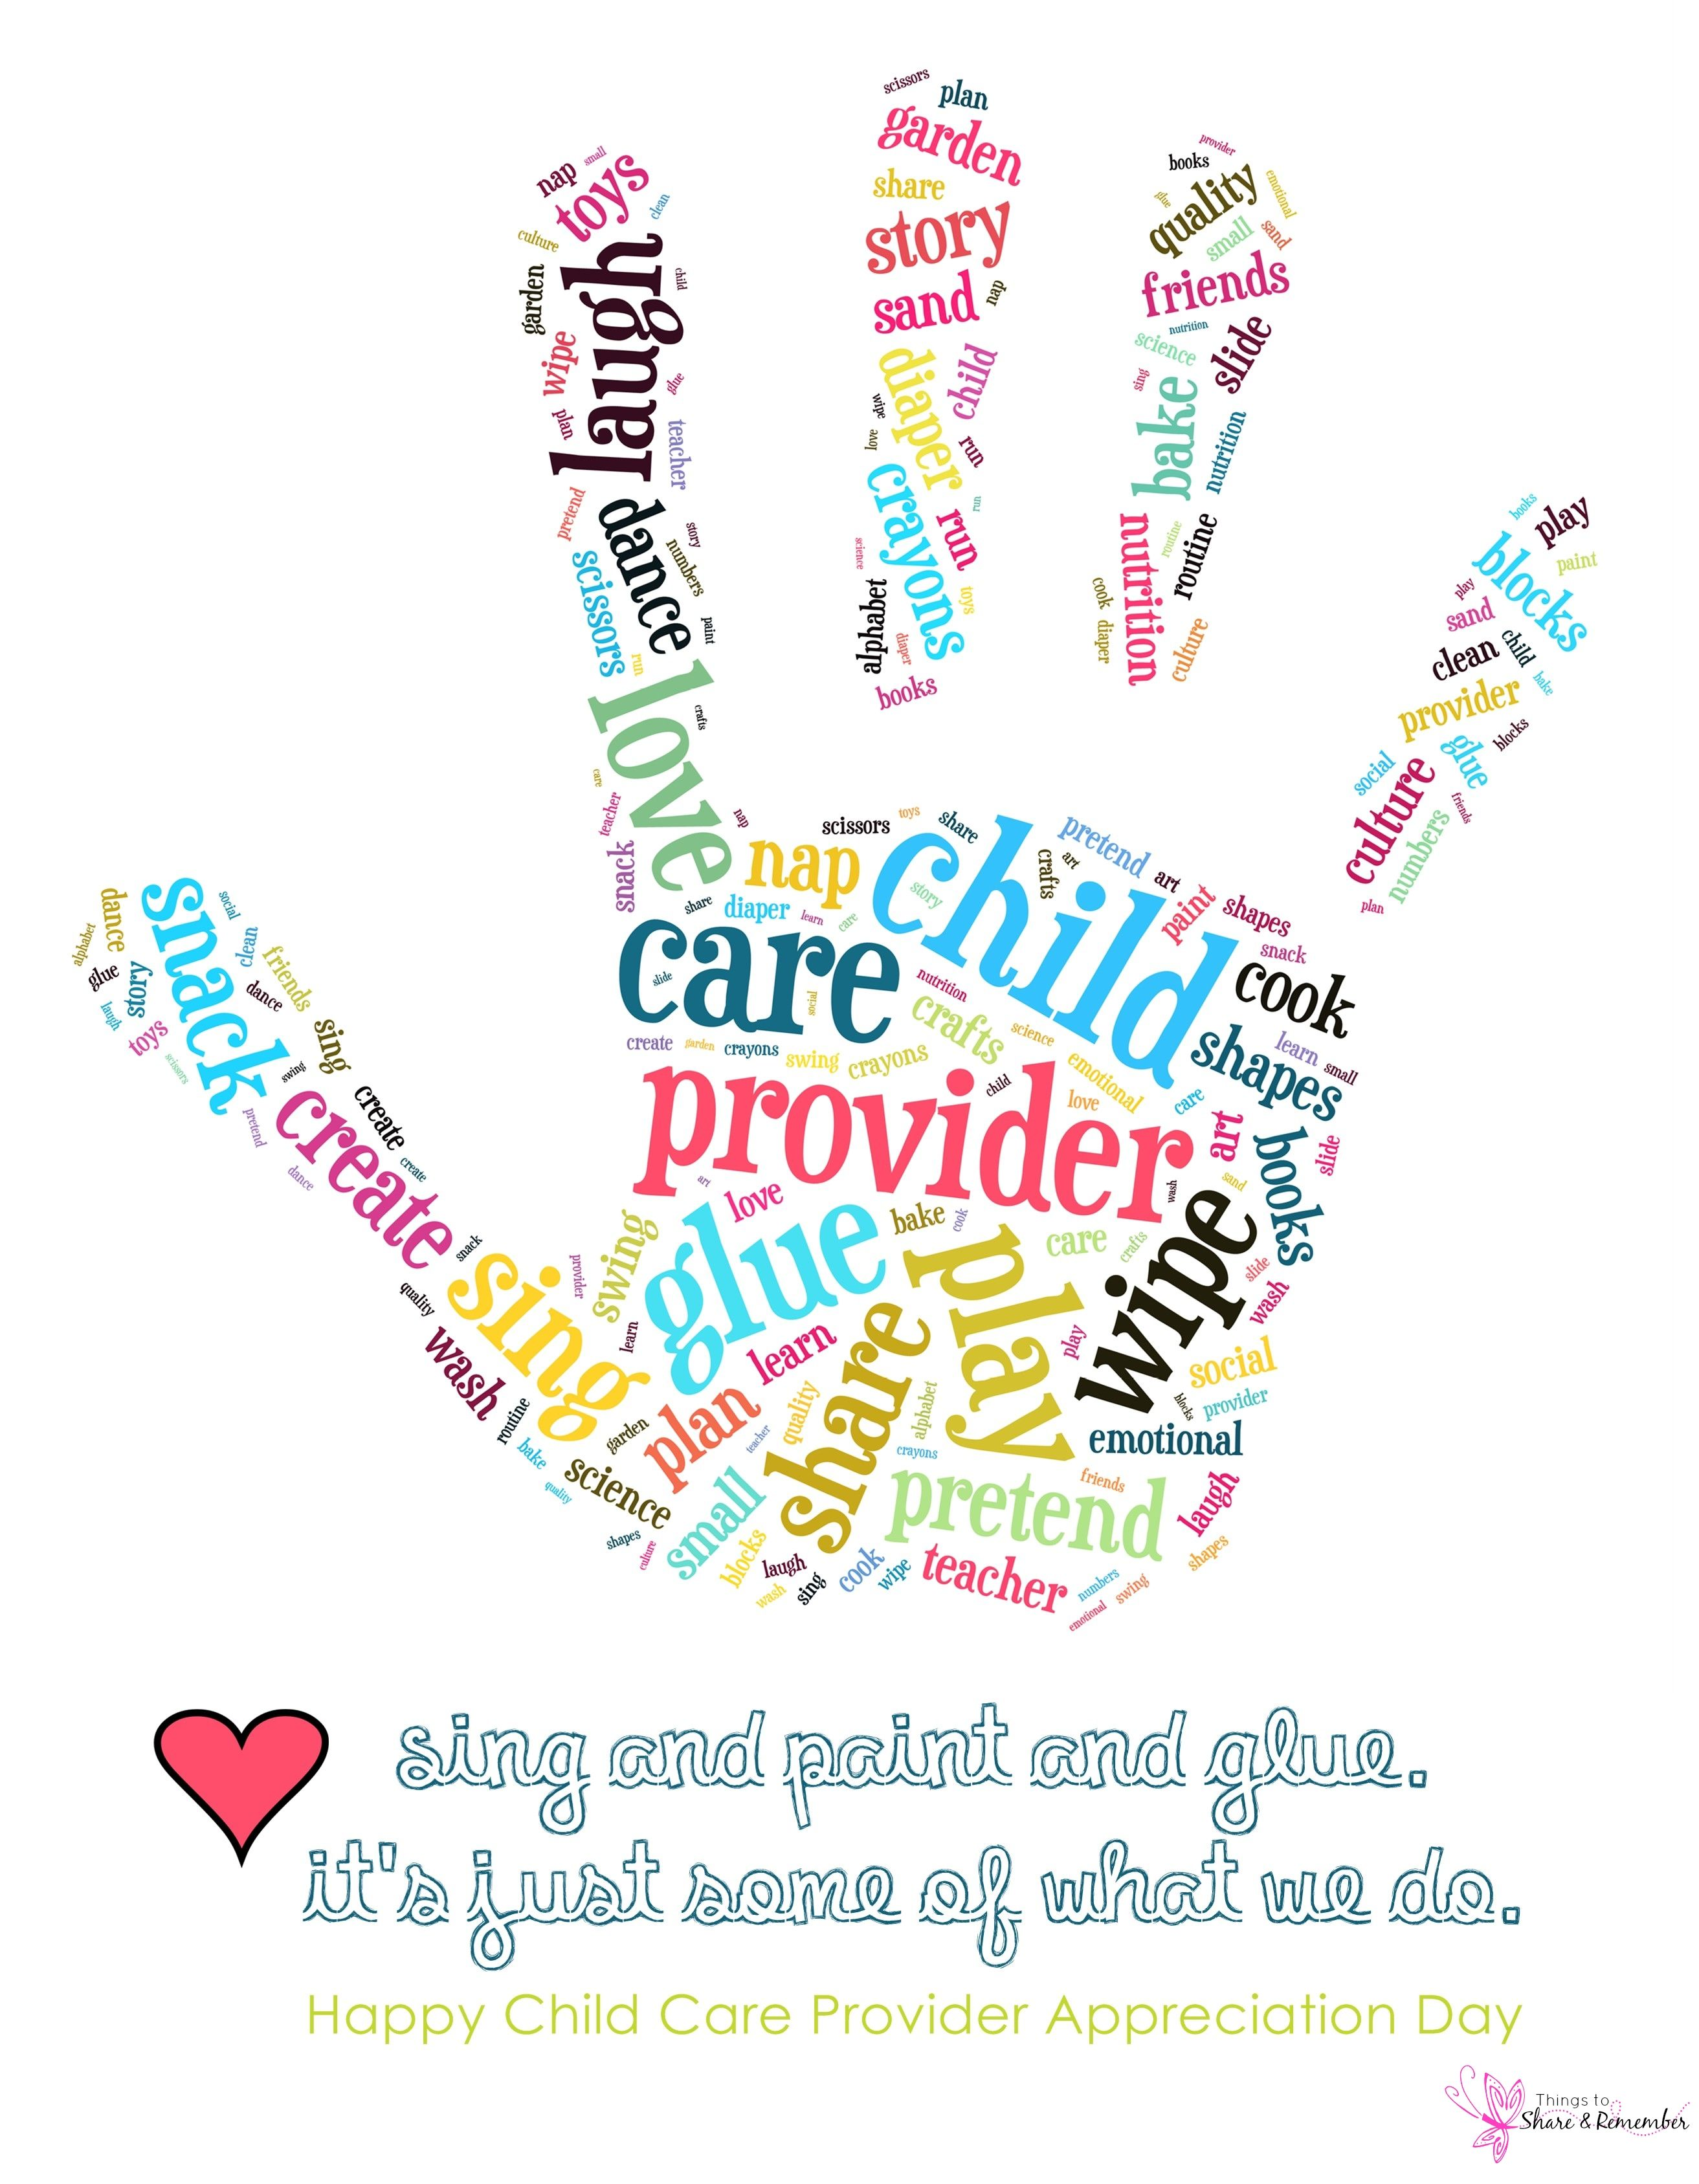 Babysitting clipart child care worker. Provider appreciation day printable